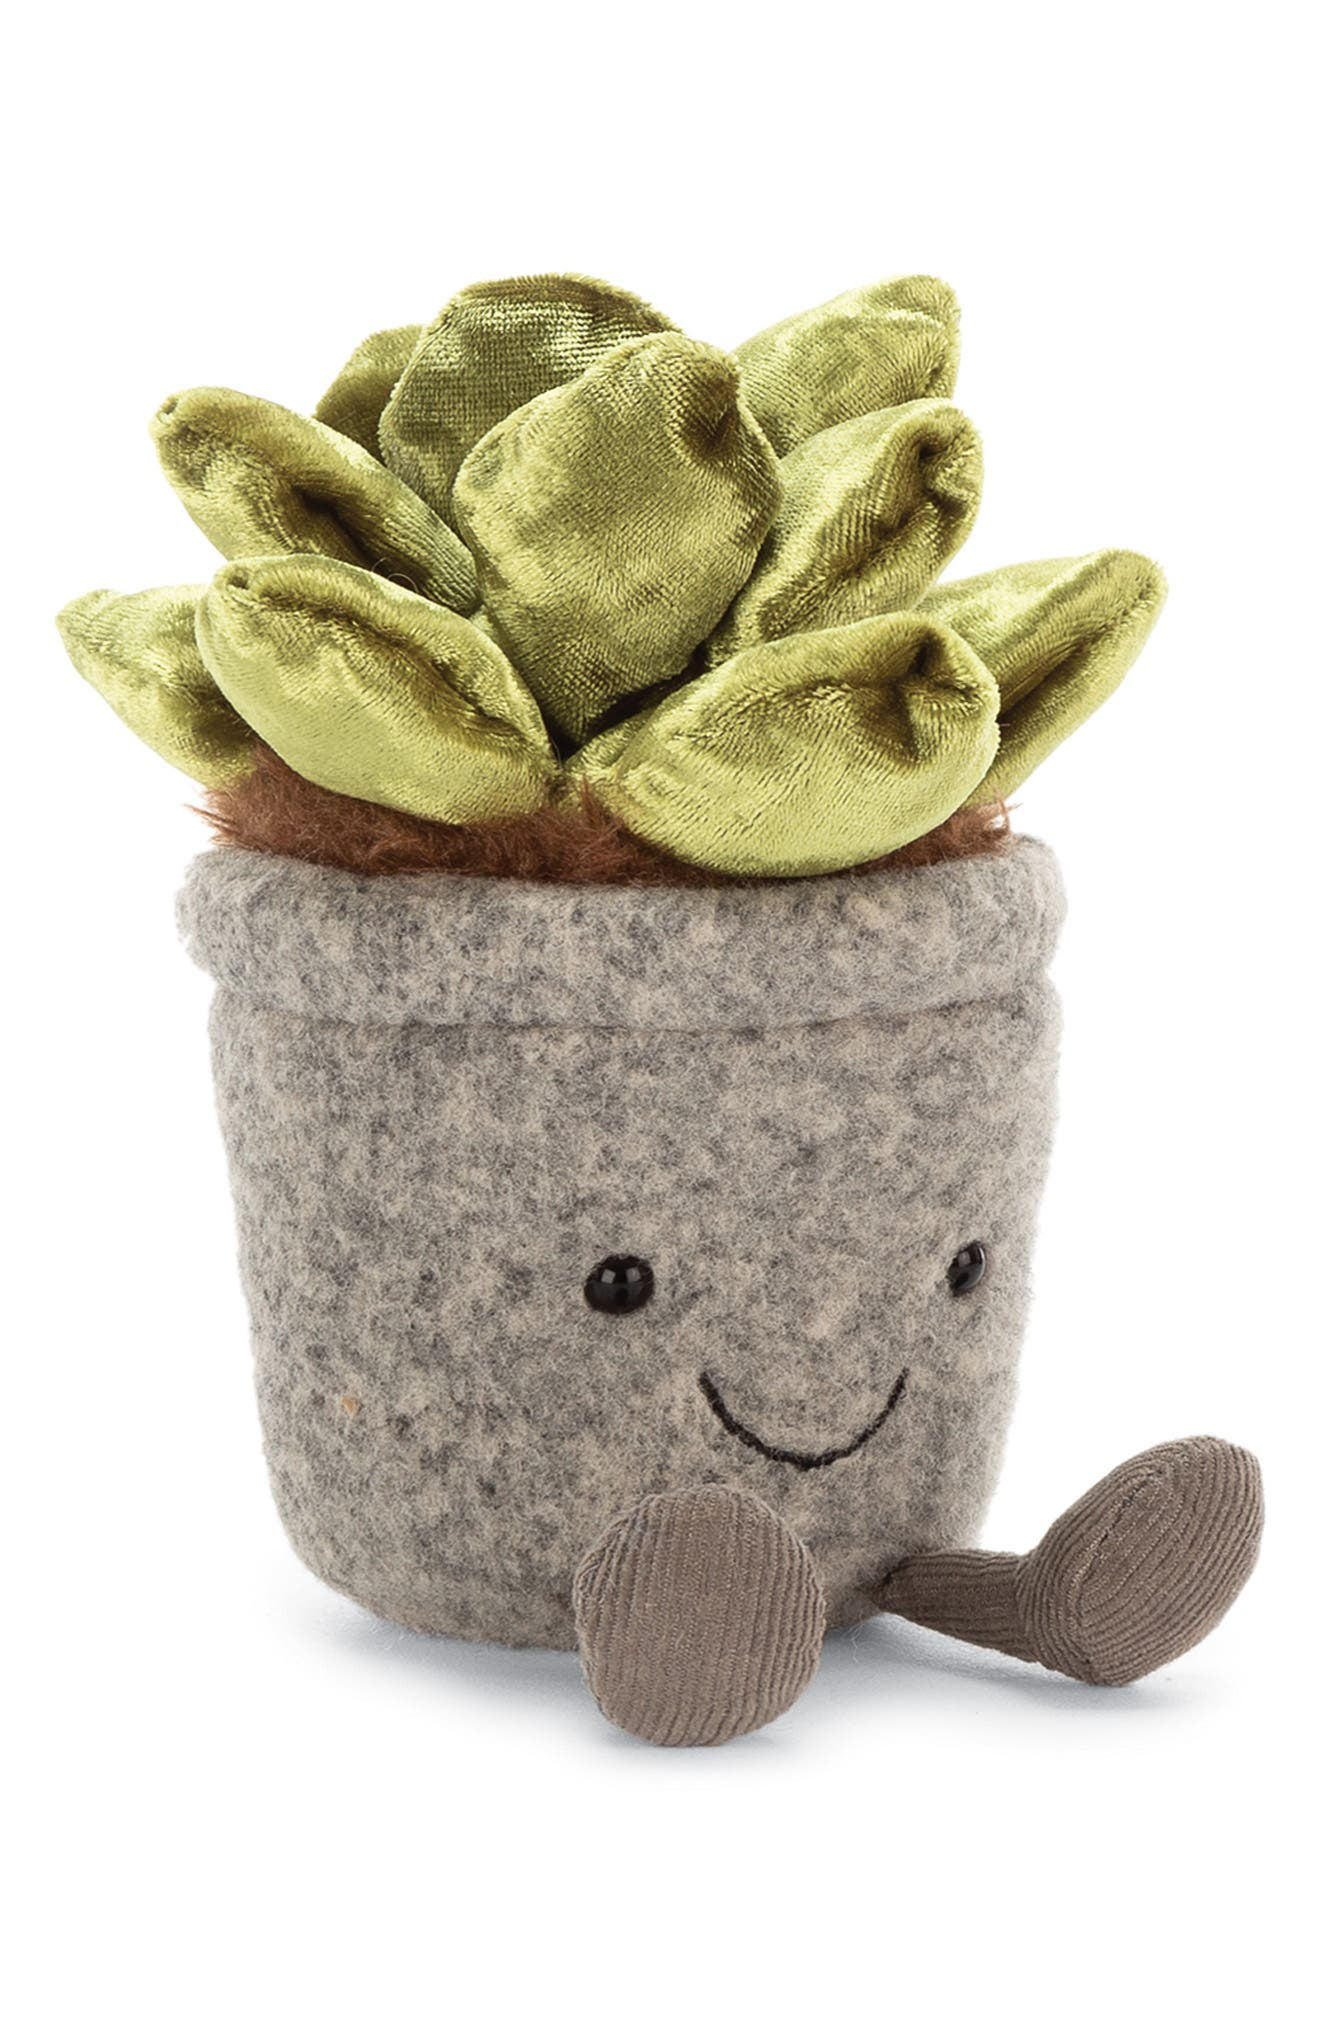 Toddler Jellycat Silly Succulent Jade Plush Toy